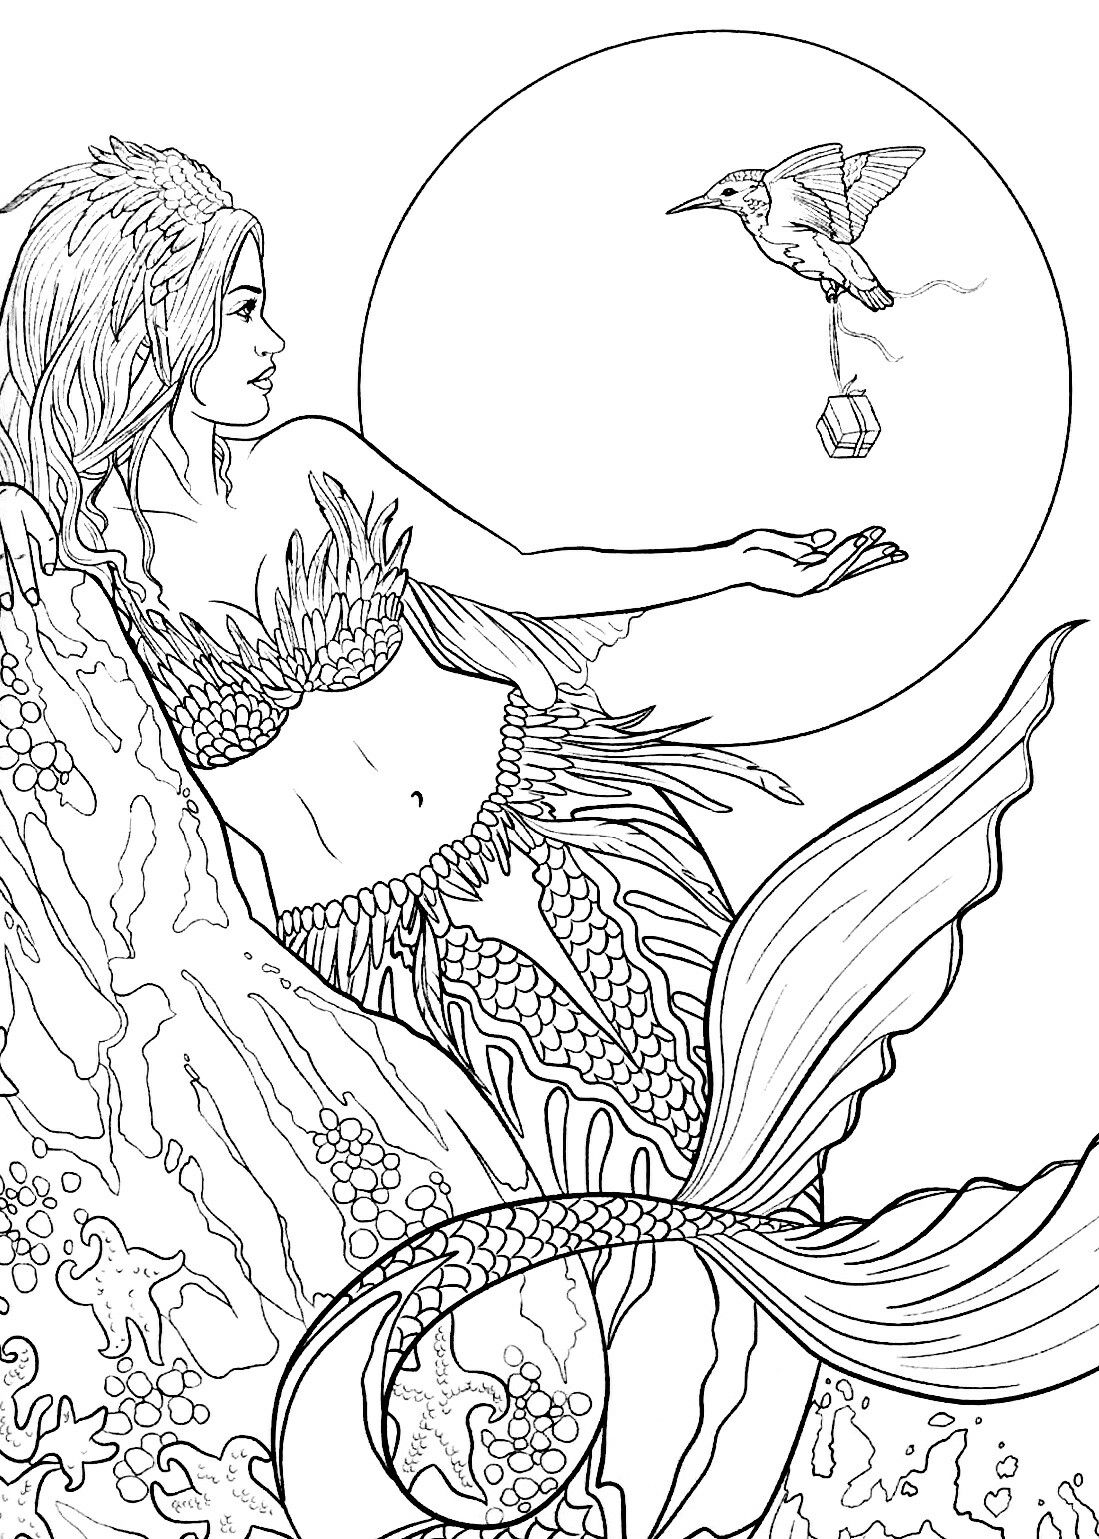 Pin by Cinthya Godoi on Coloring: Sirens Of The Sea ...